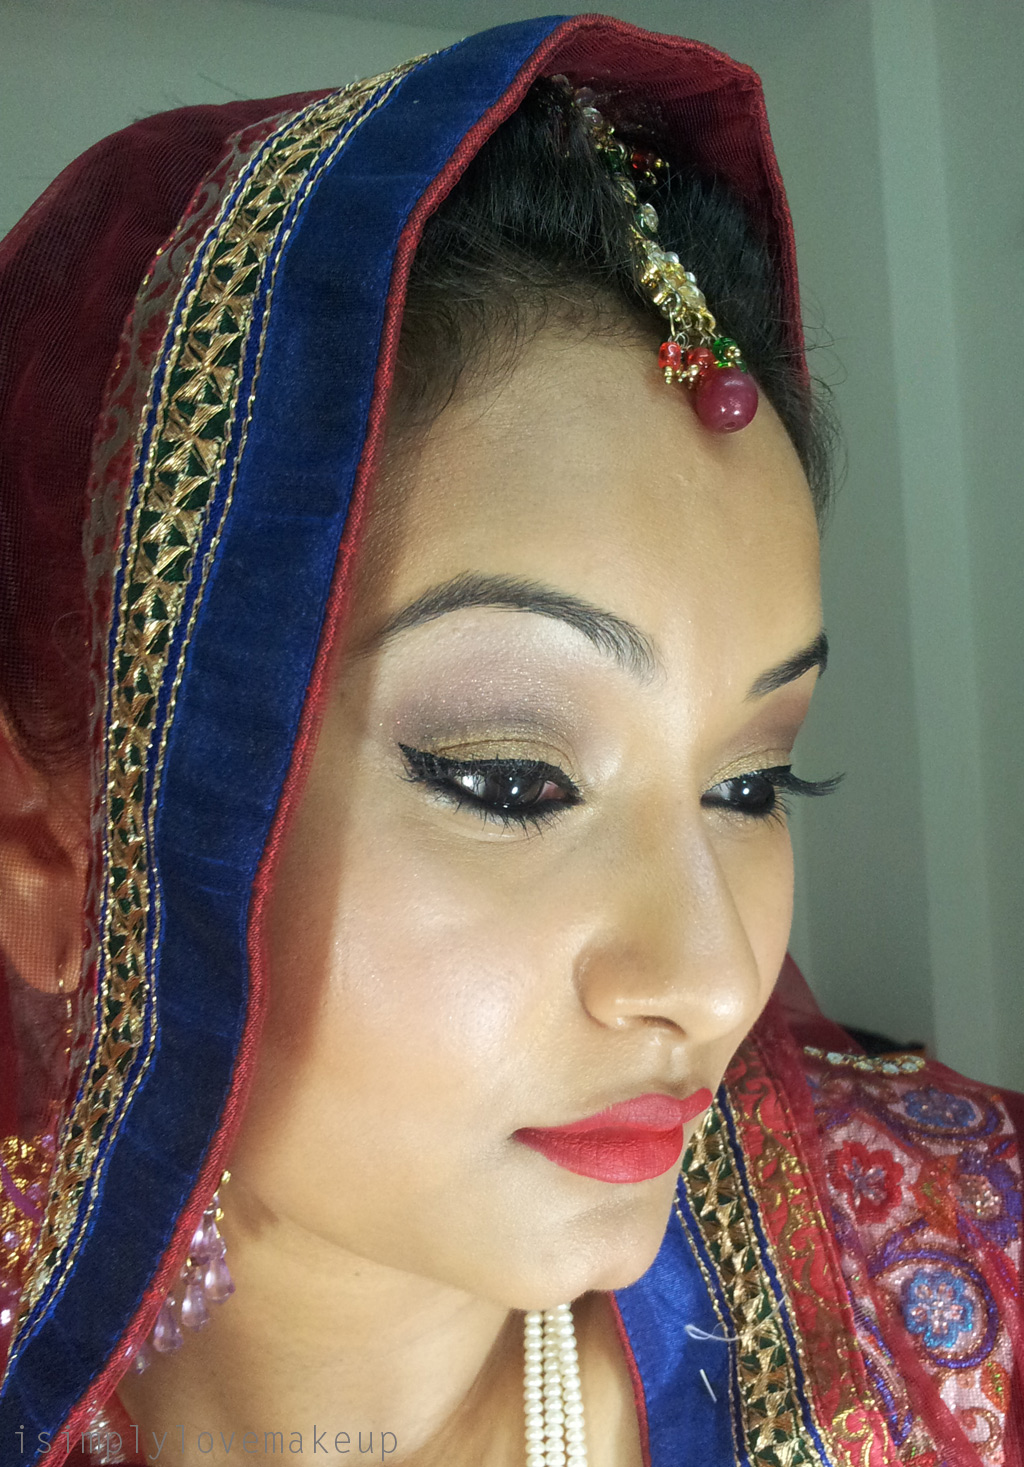 Tips Tricks For Doing Your Own Wedding Makeup Night Ceremony